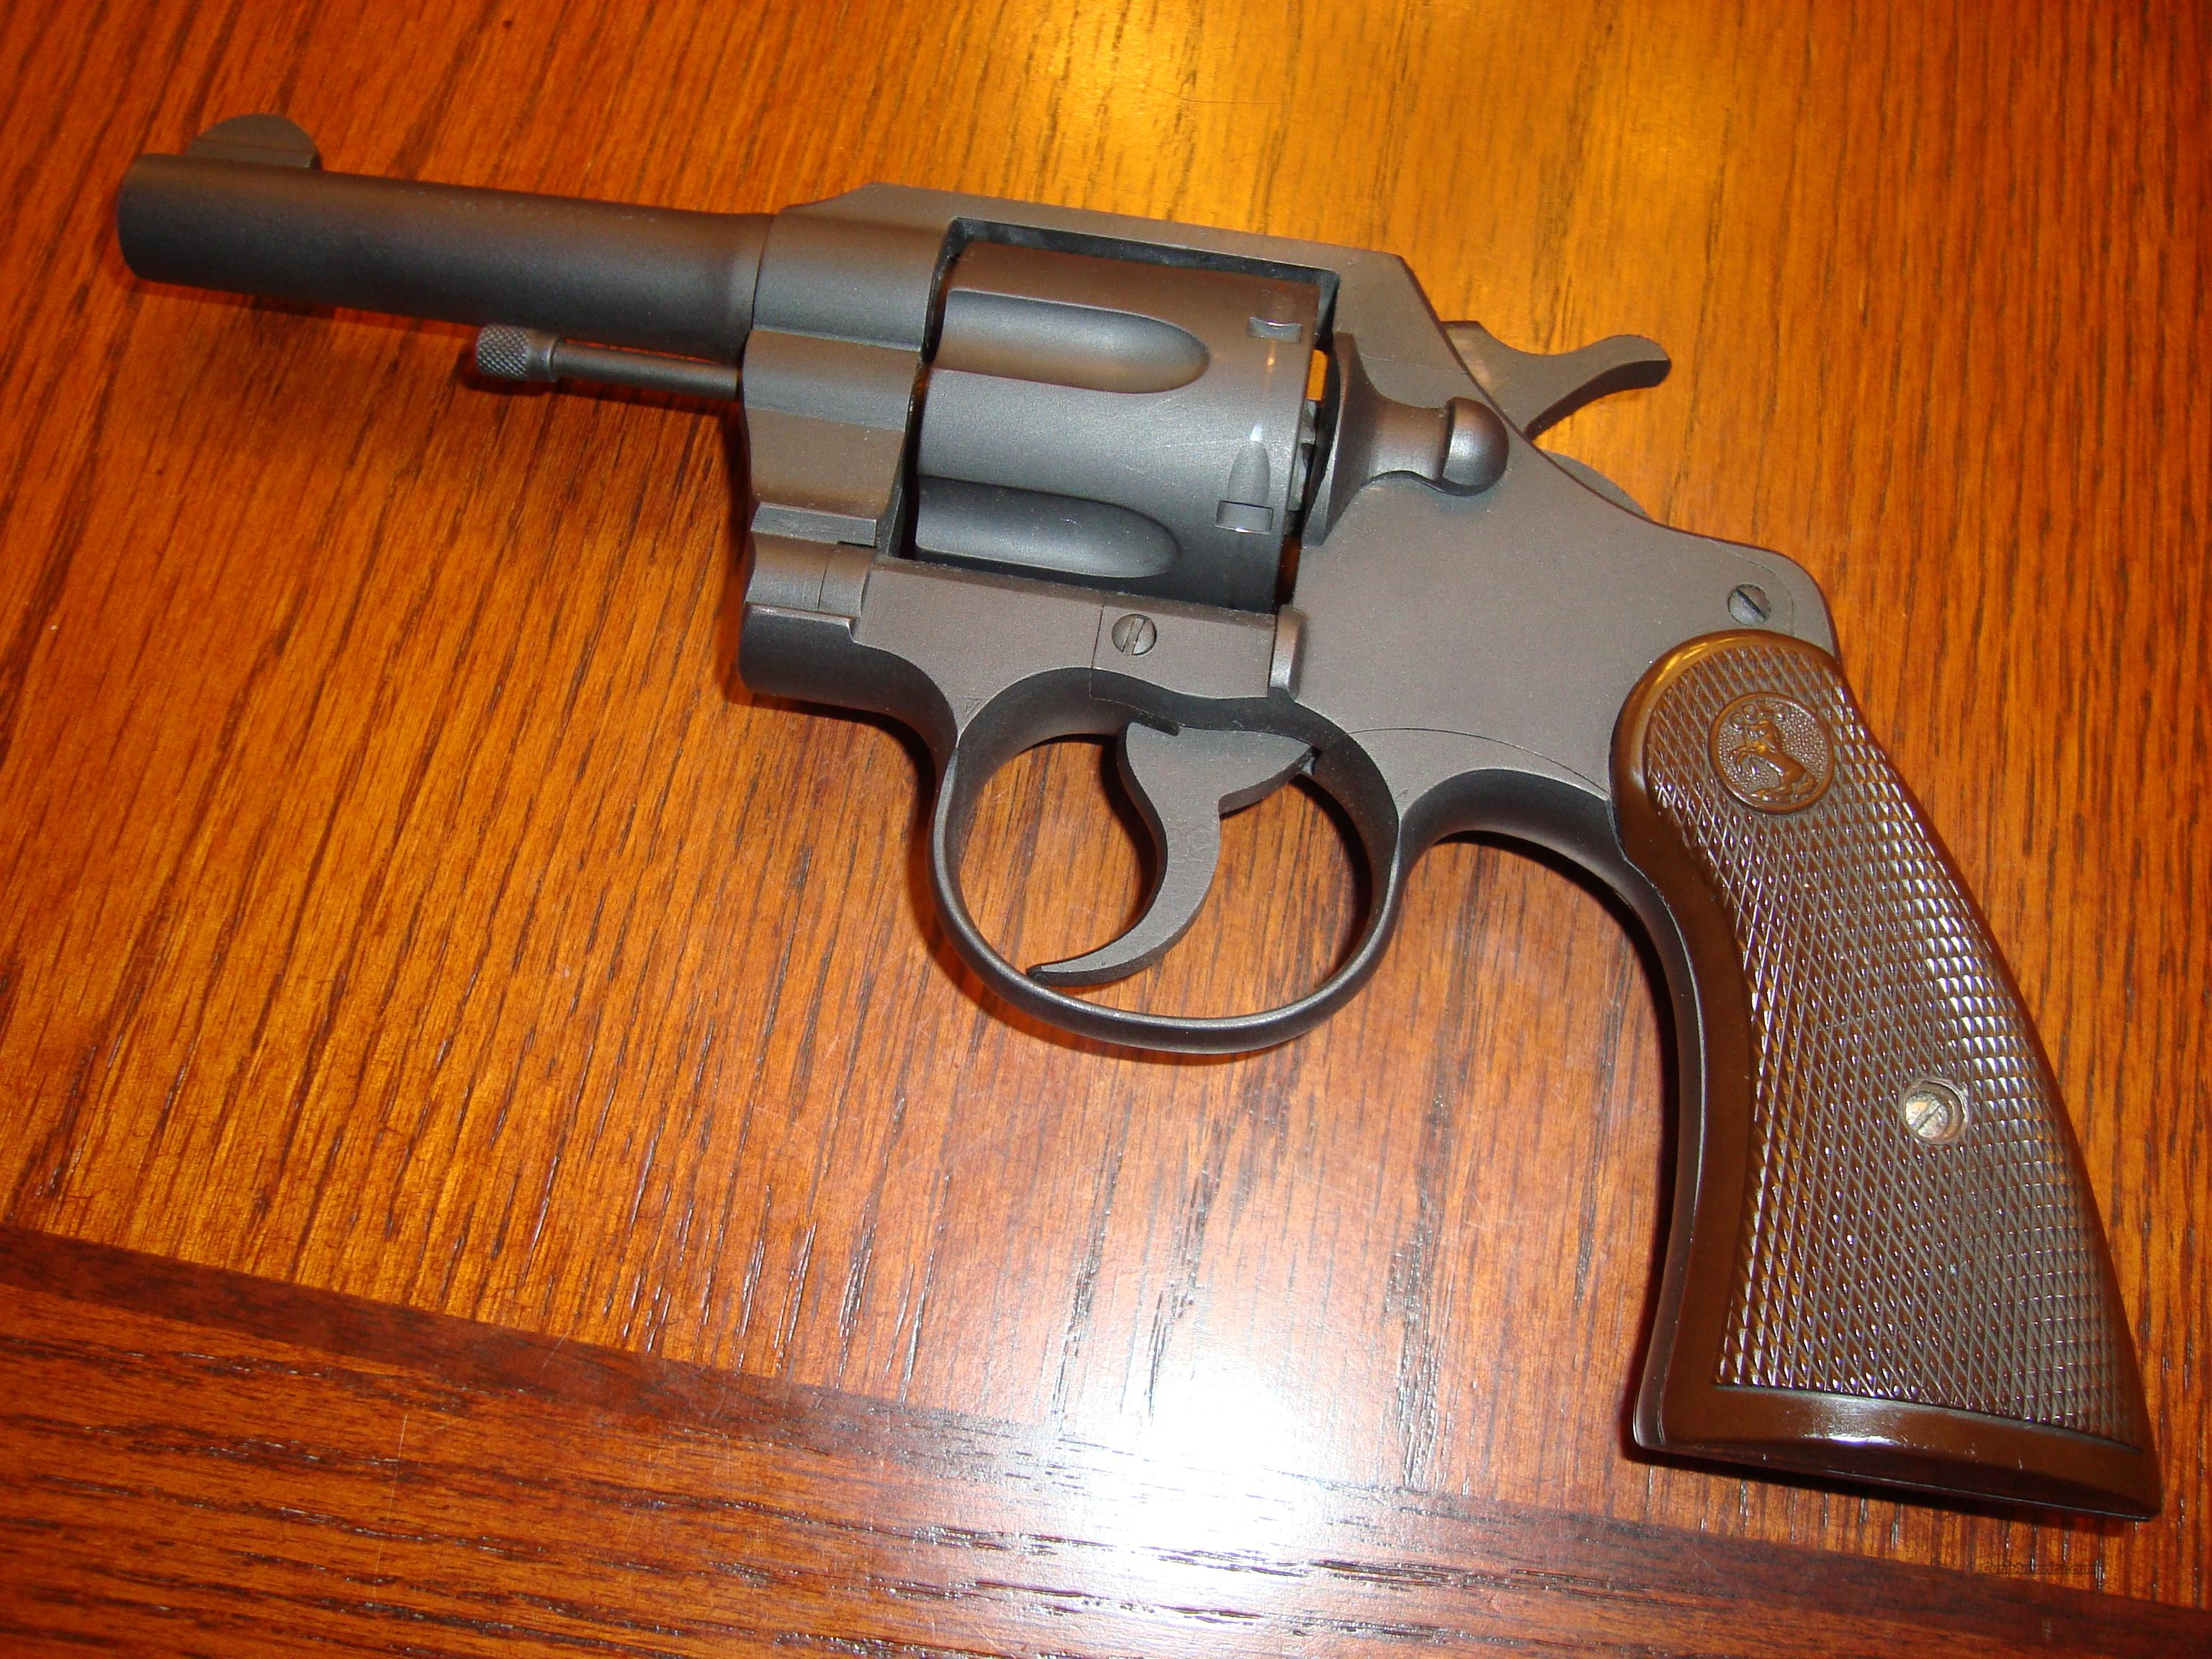 MINT COLT COMMANDO WW2 99% PARKERIZED FINISH  Guns > Pistols > Colt Double Action Revolvers- Pre-1945